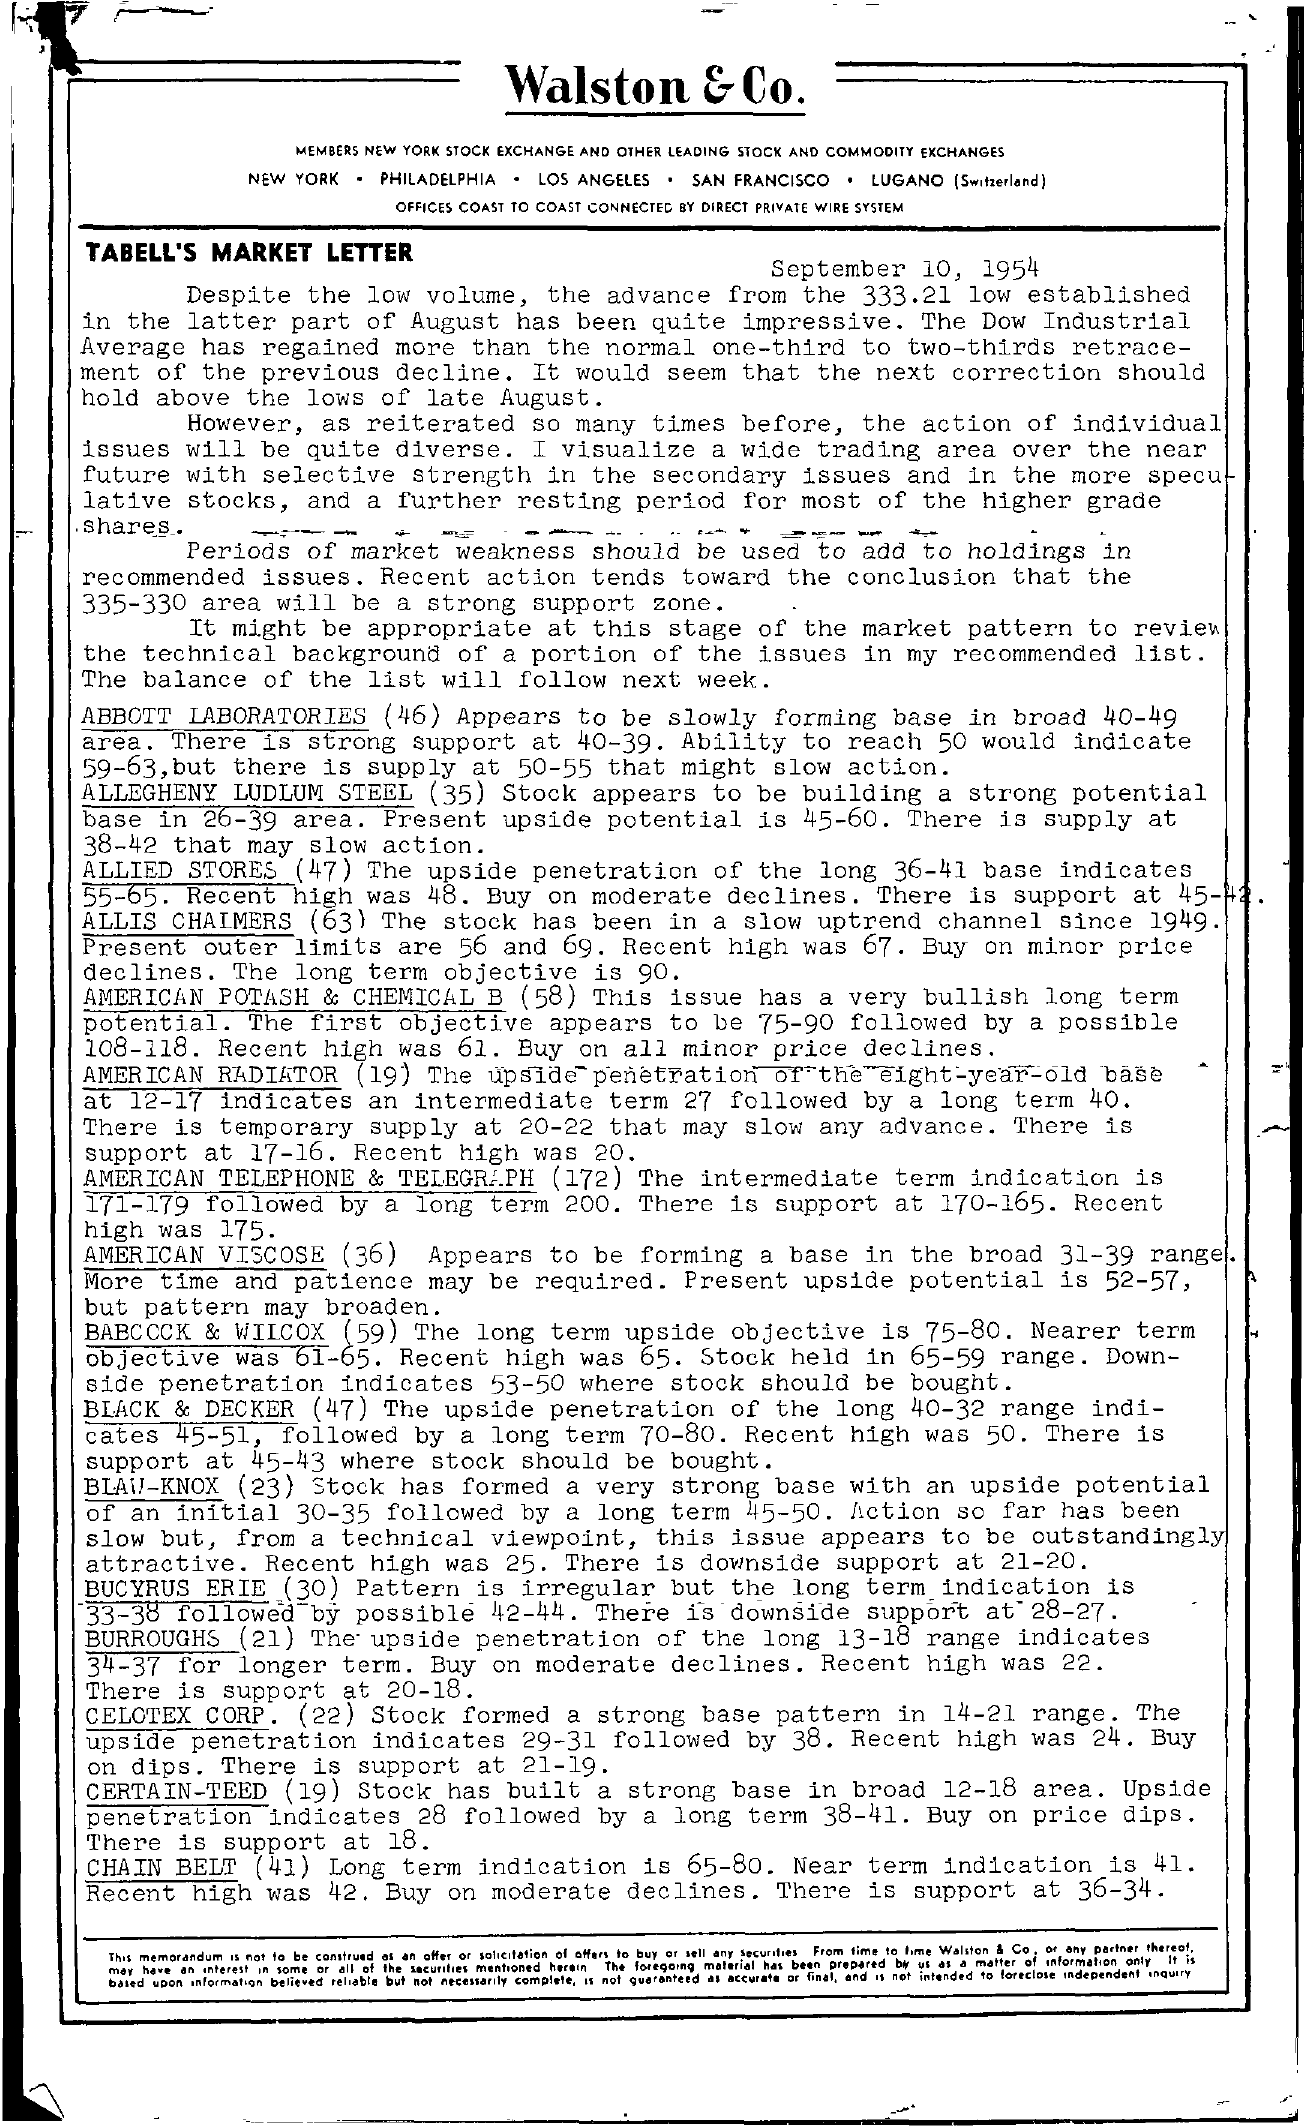 Tabell's Market Letter - September 10, 1954 page 1